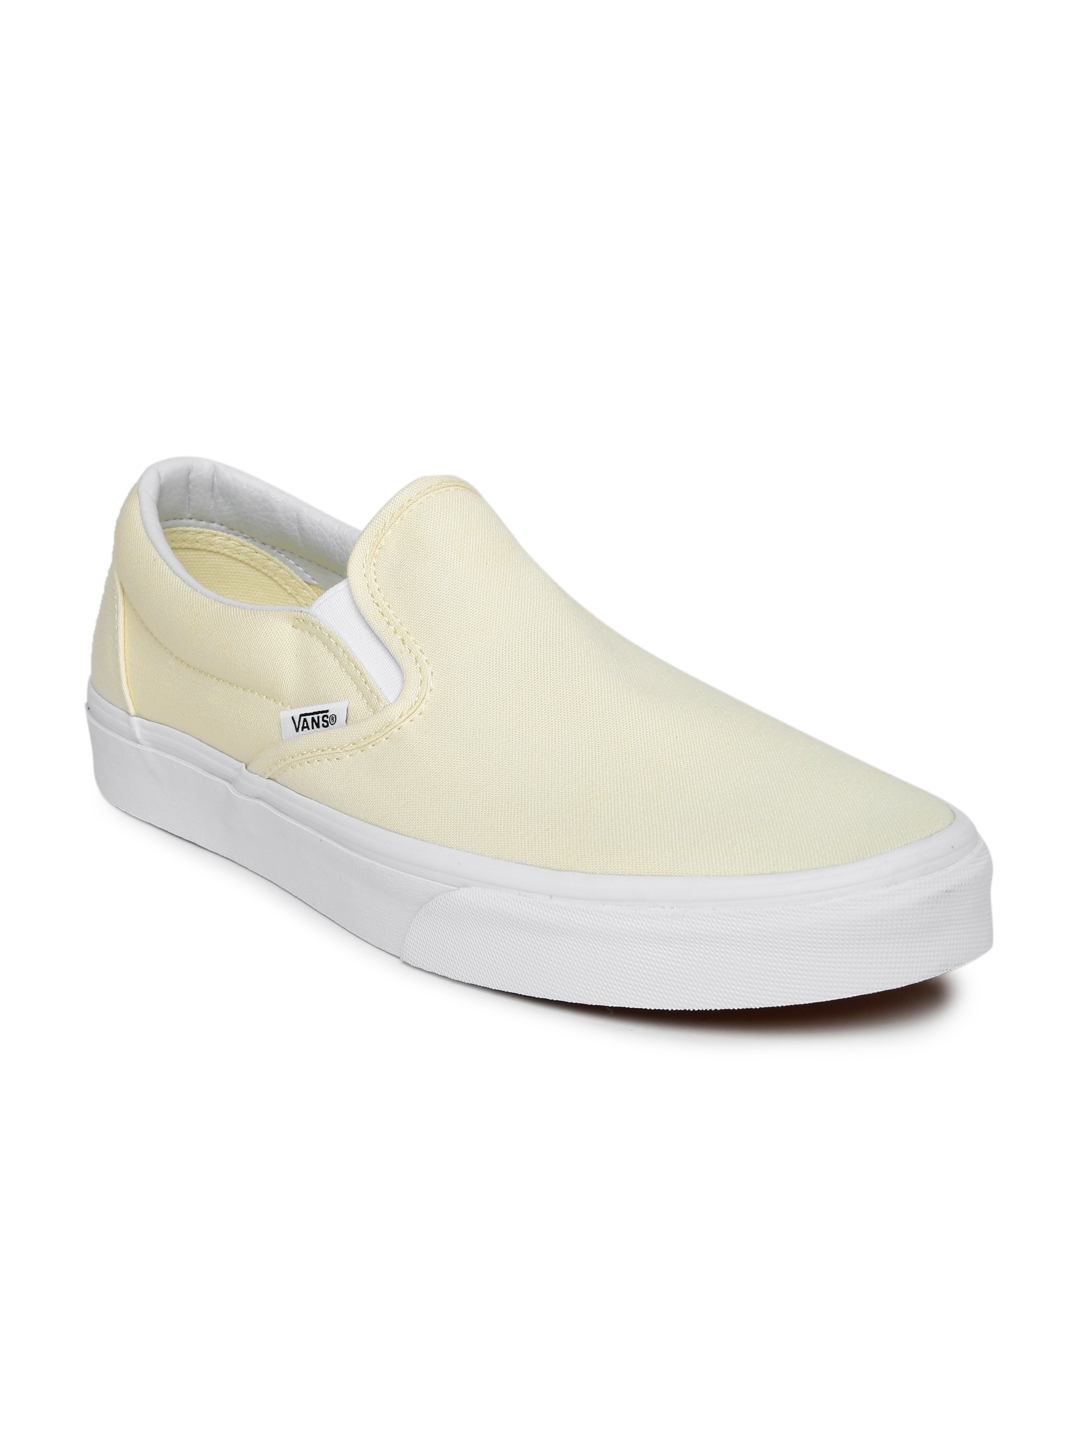 772400876b567f Buy Vans Unisex Cream Coloured Solid Classic Slip On Sneakers ...